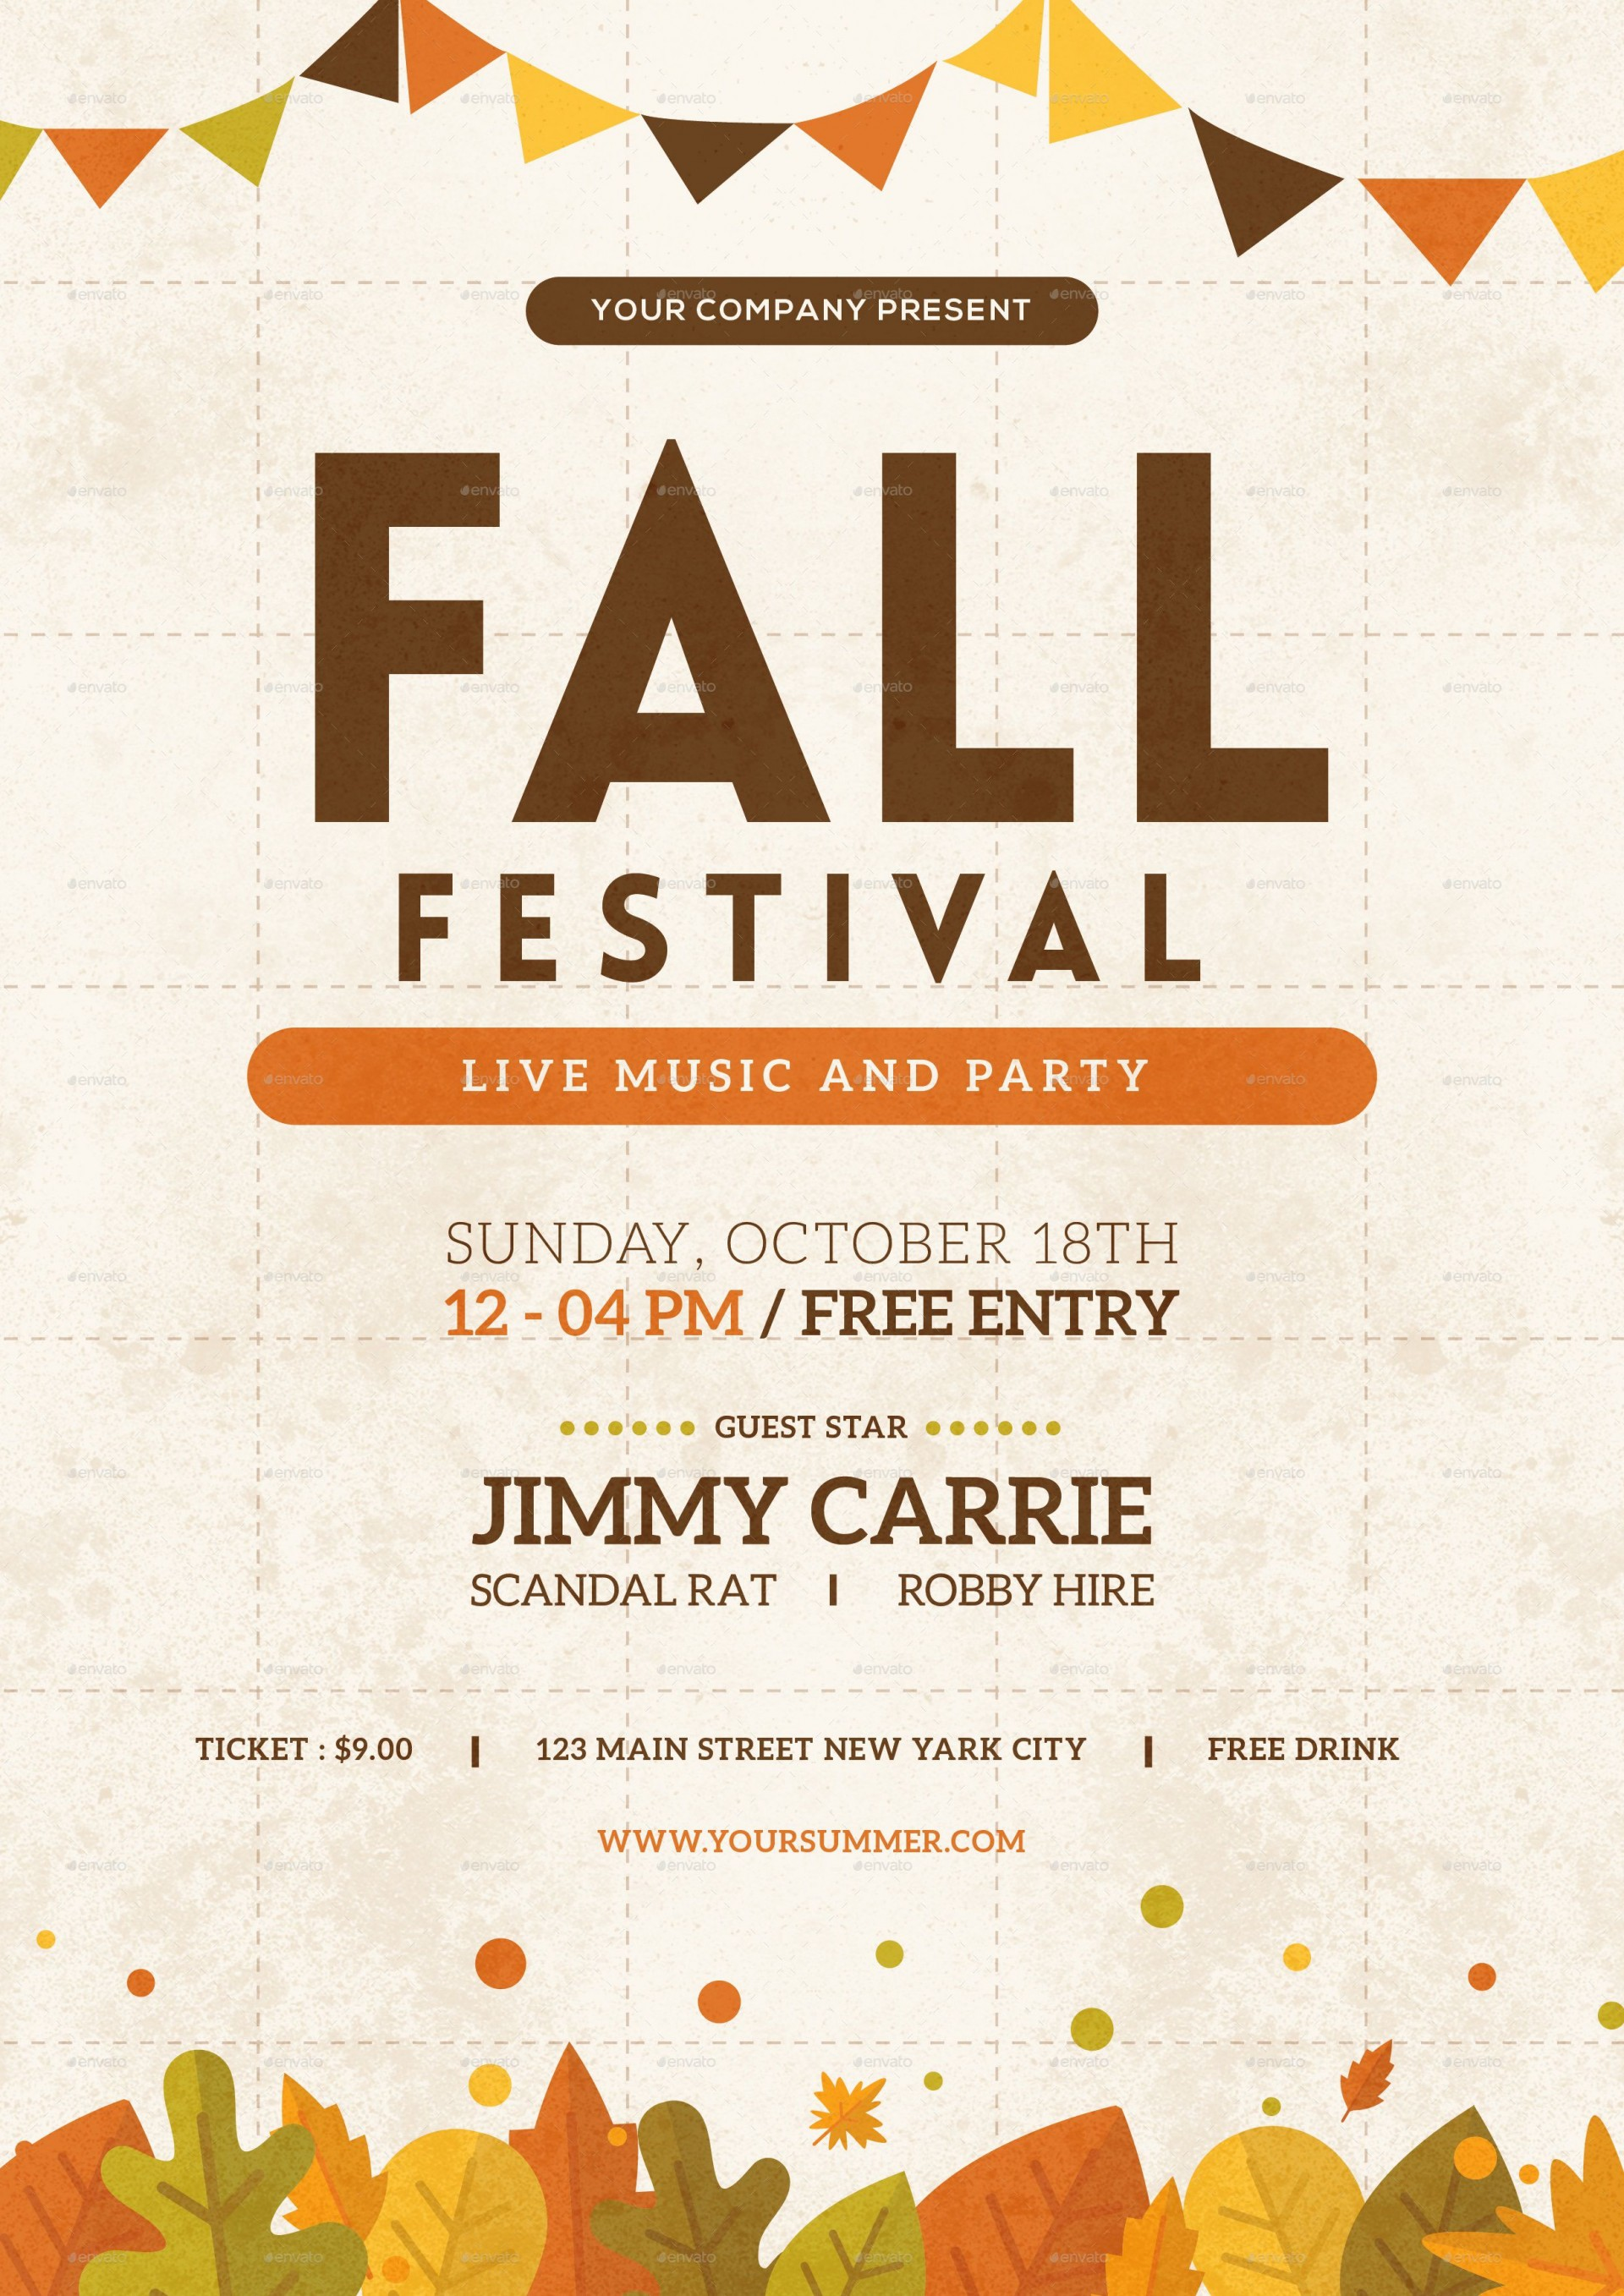 003 Impressive Fall Festival Flyer Template Picture  Free1920